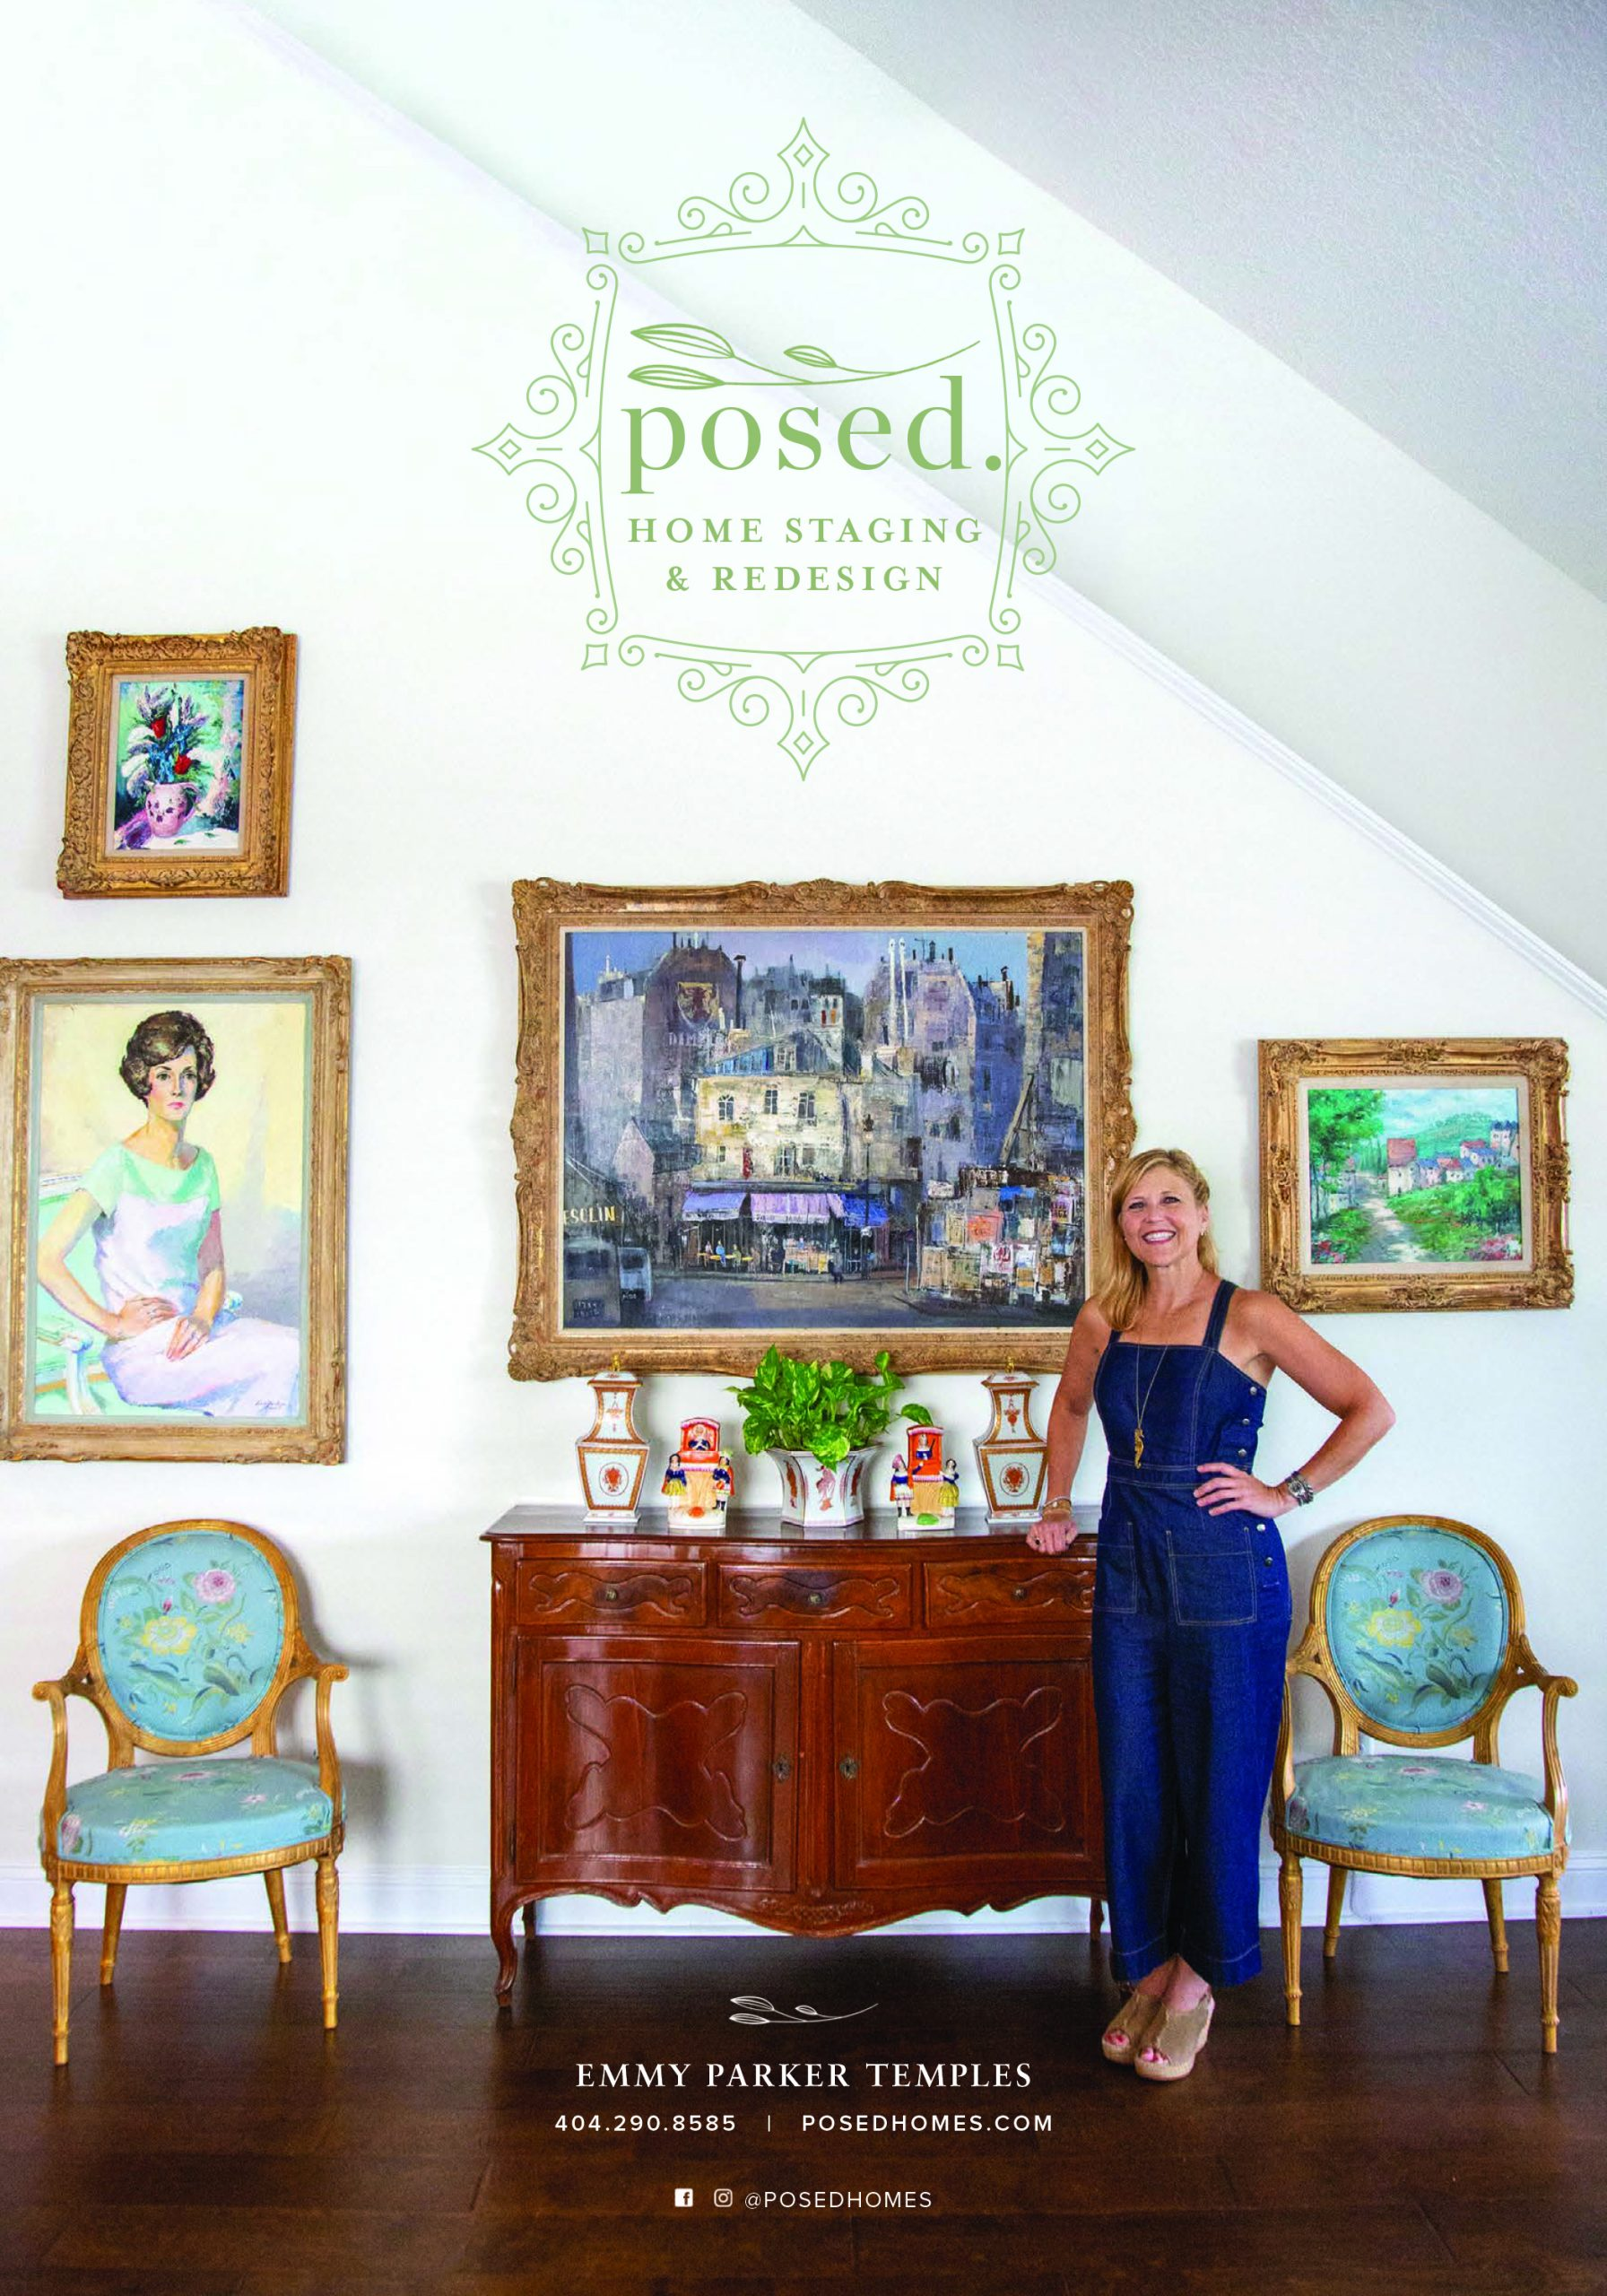 Emmy Parker Temples and Posed. Home Staging & Redesign ad in Tocal Magazine 2019